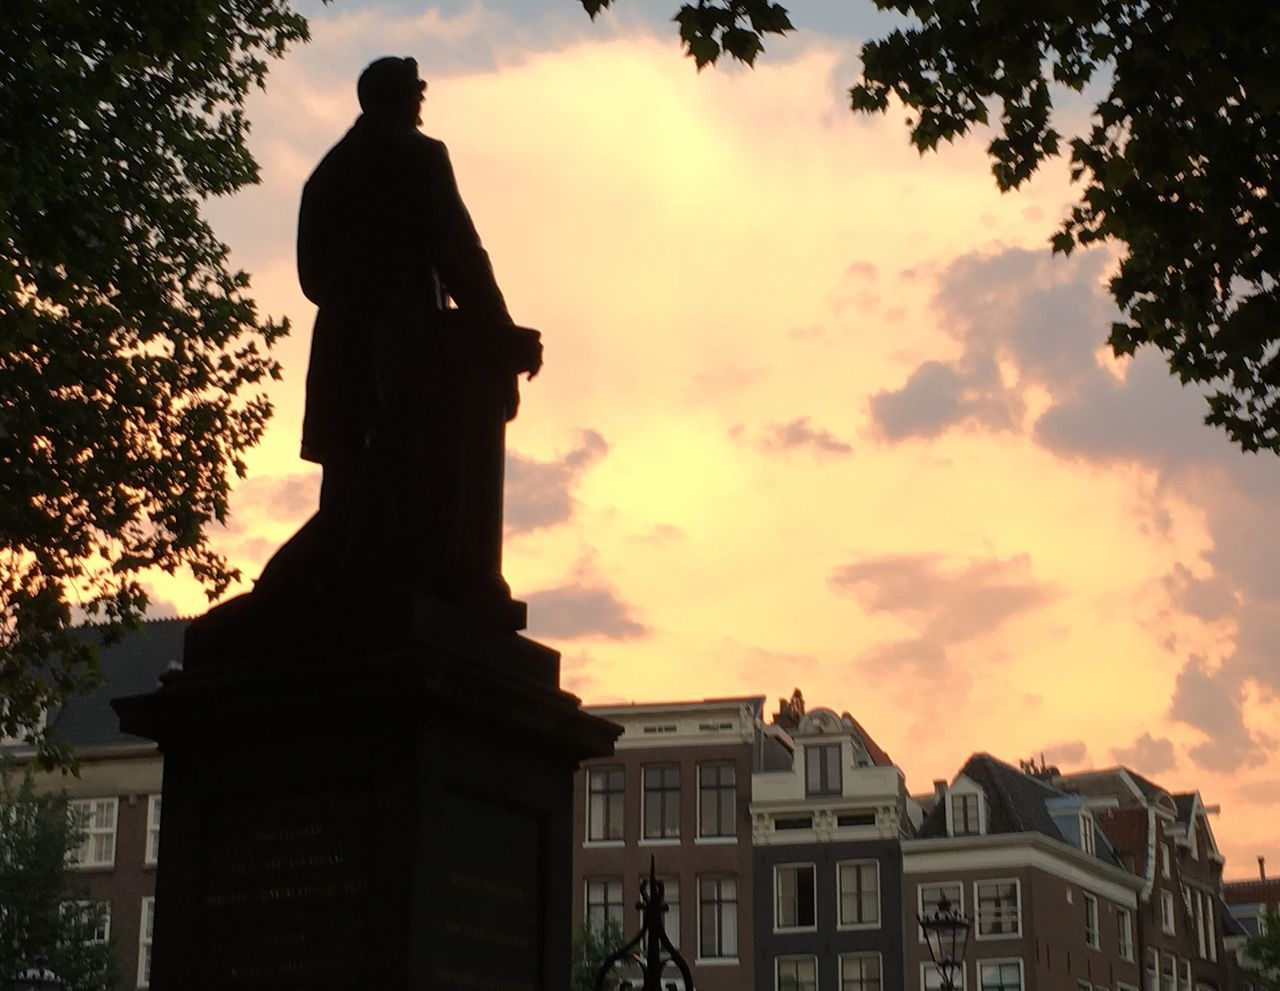 STATUE AT SUNSET